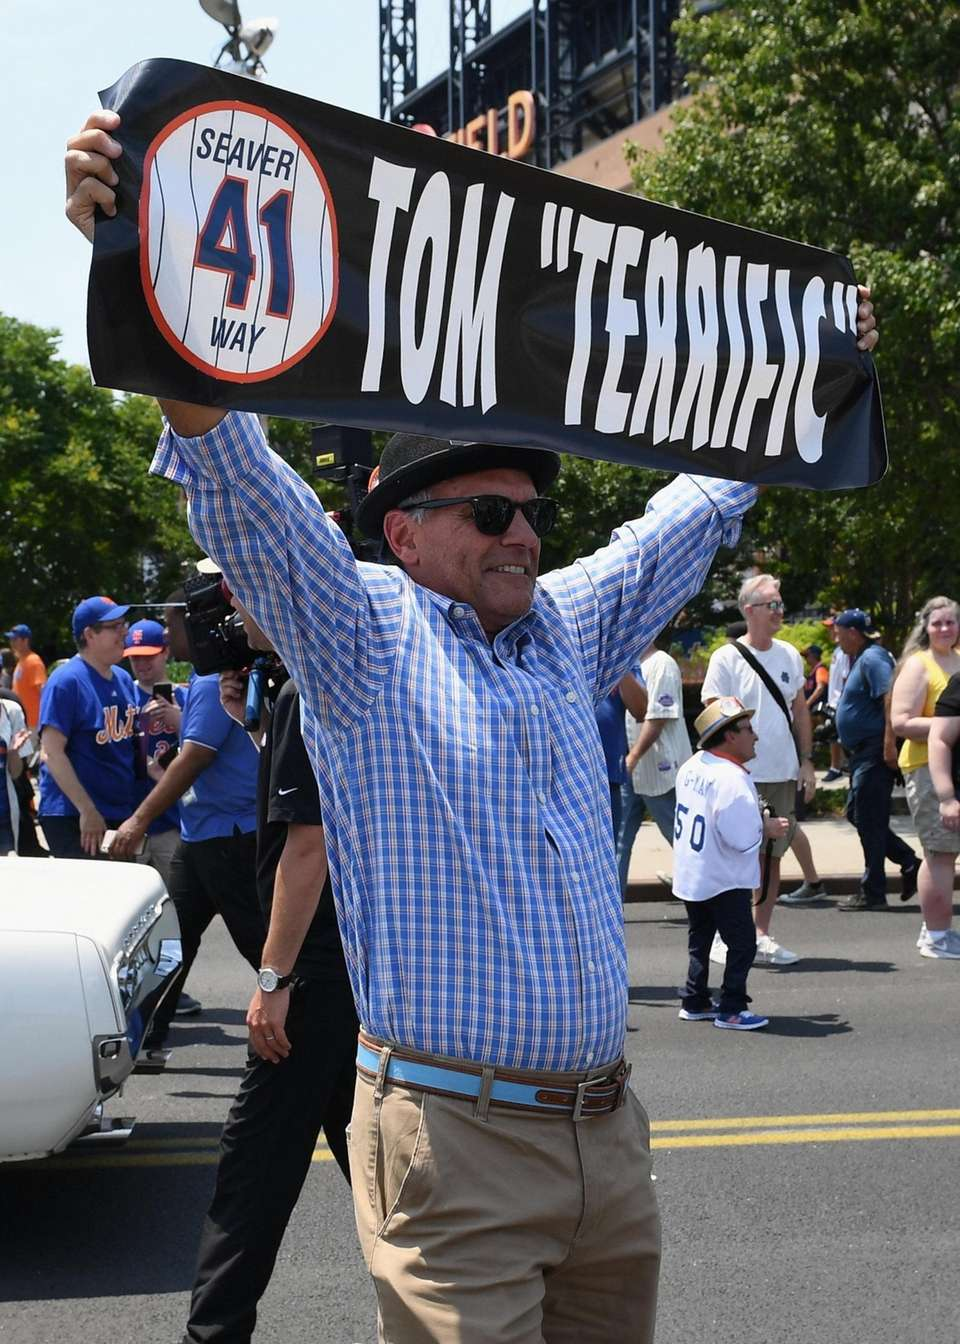 A fan holds a sign for Tom Seaver